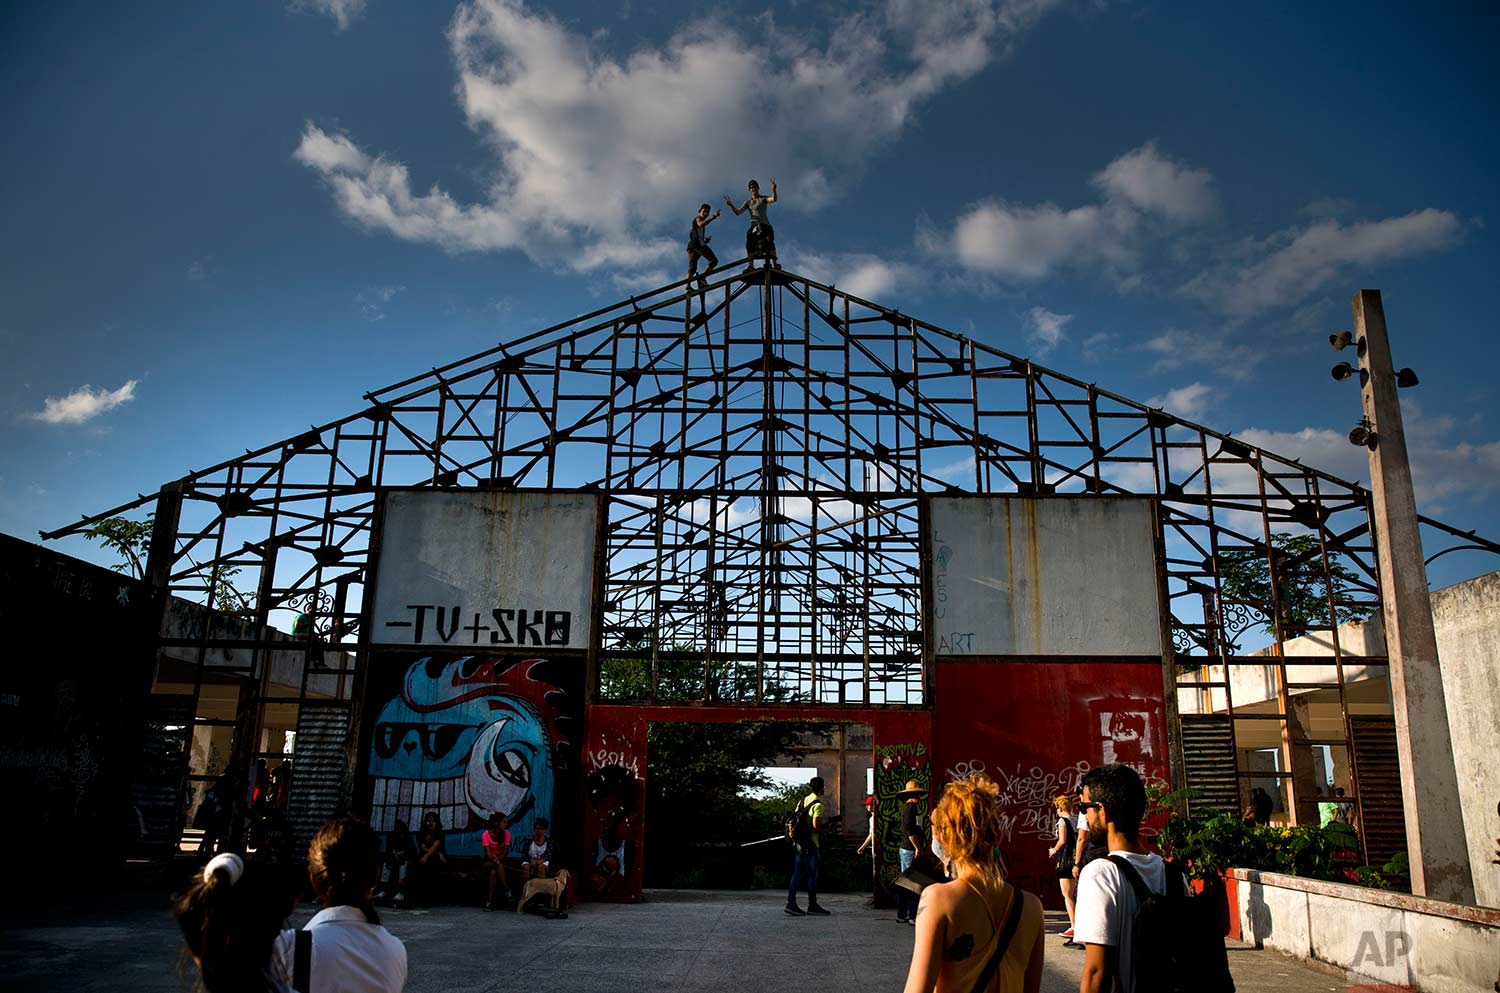 In this Jan. 11, 2018 photo, people arrive to an abandoned gym recently converted into a space for skateboarders, the day of its inauguration inside the Educational complex Ciudad Libertad, a former military barracks that the late Fidel Castro turned into a school complex after the revolution in Havana, Cuba. (AP Photo/Ramon Espinosa)